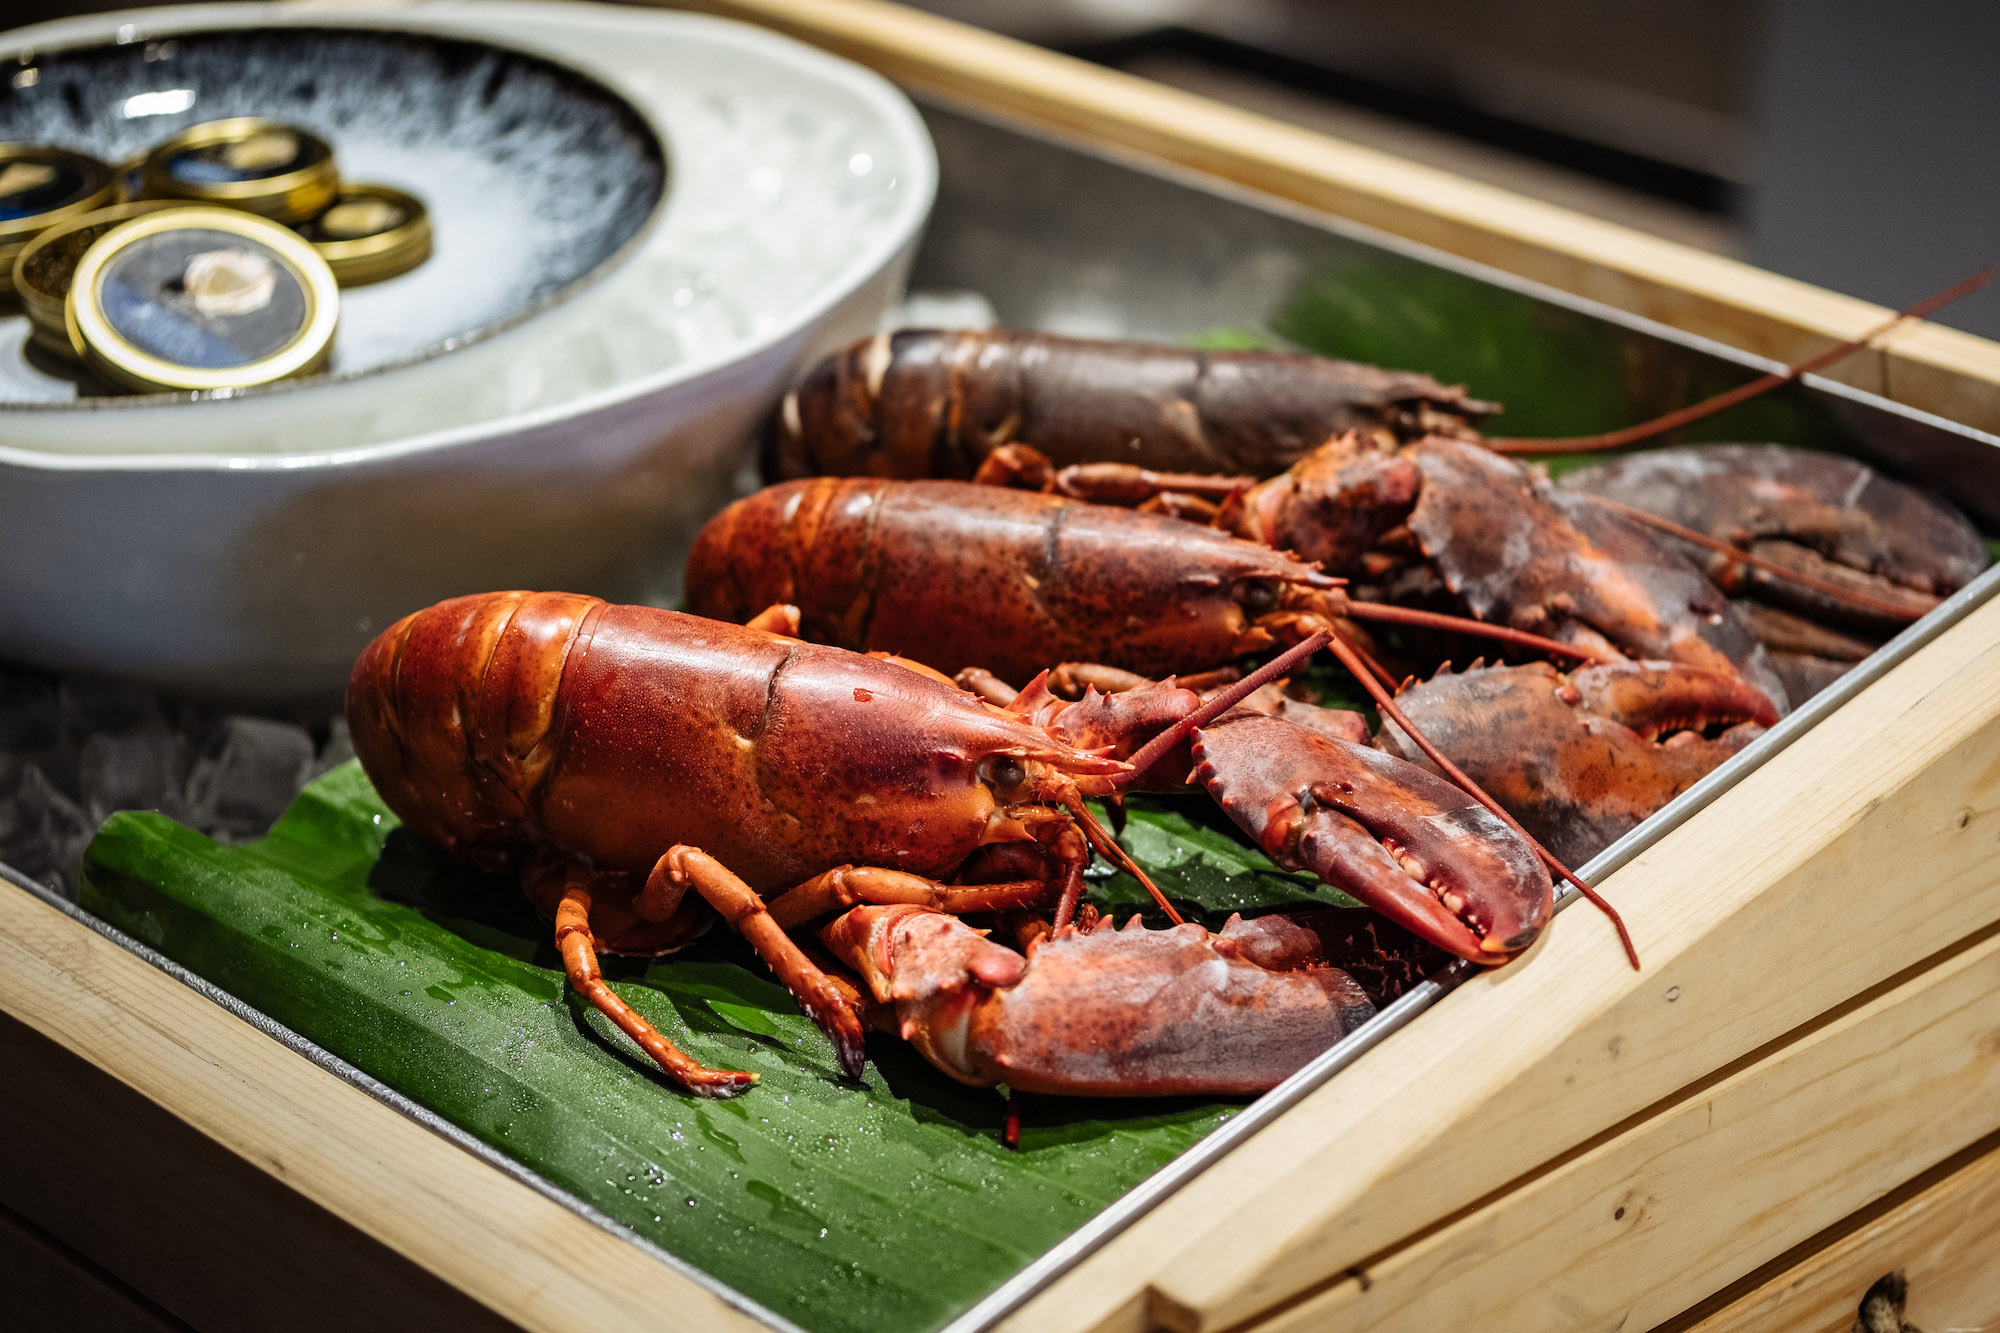 Dine the world's most exclusive papaya salad with lobster, caviar, and champagne or chardonnay at akyra Thonglor Bangkok Hotel - Alvinology